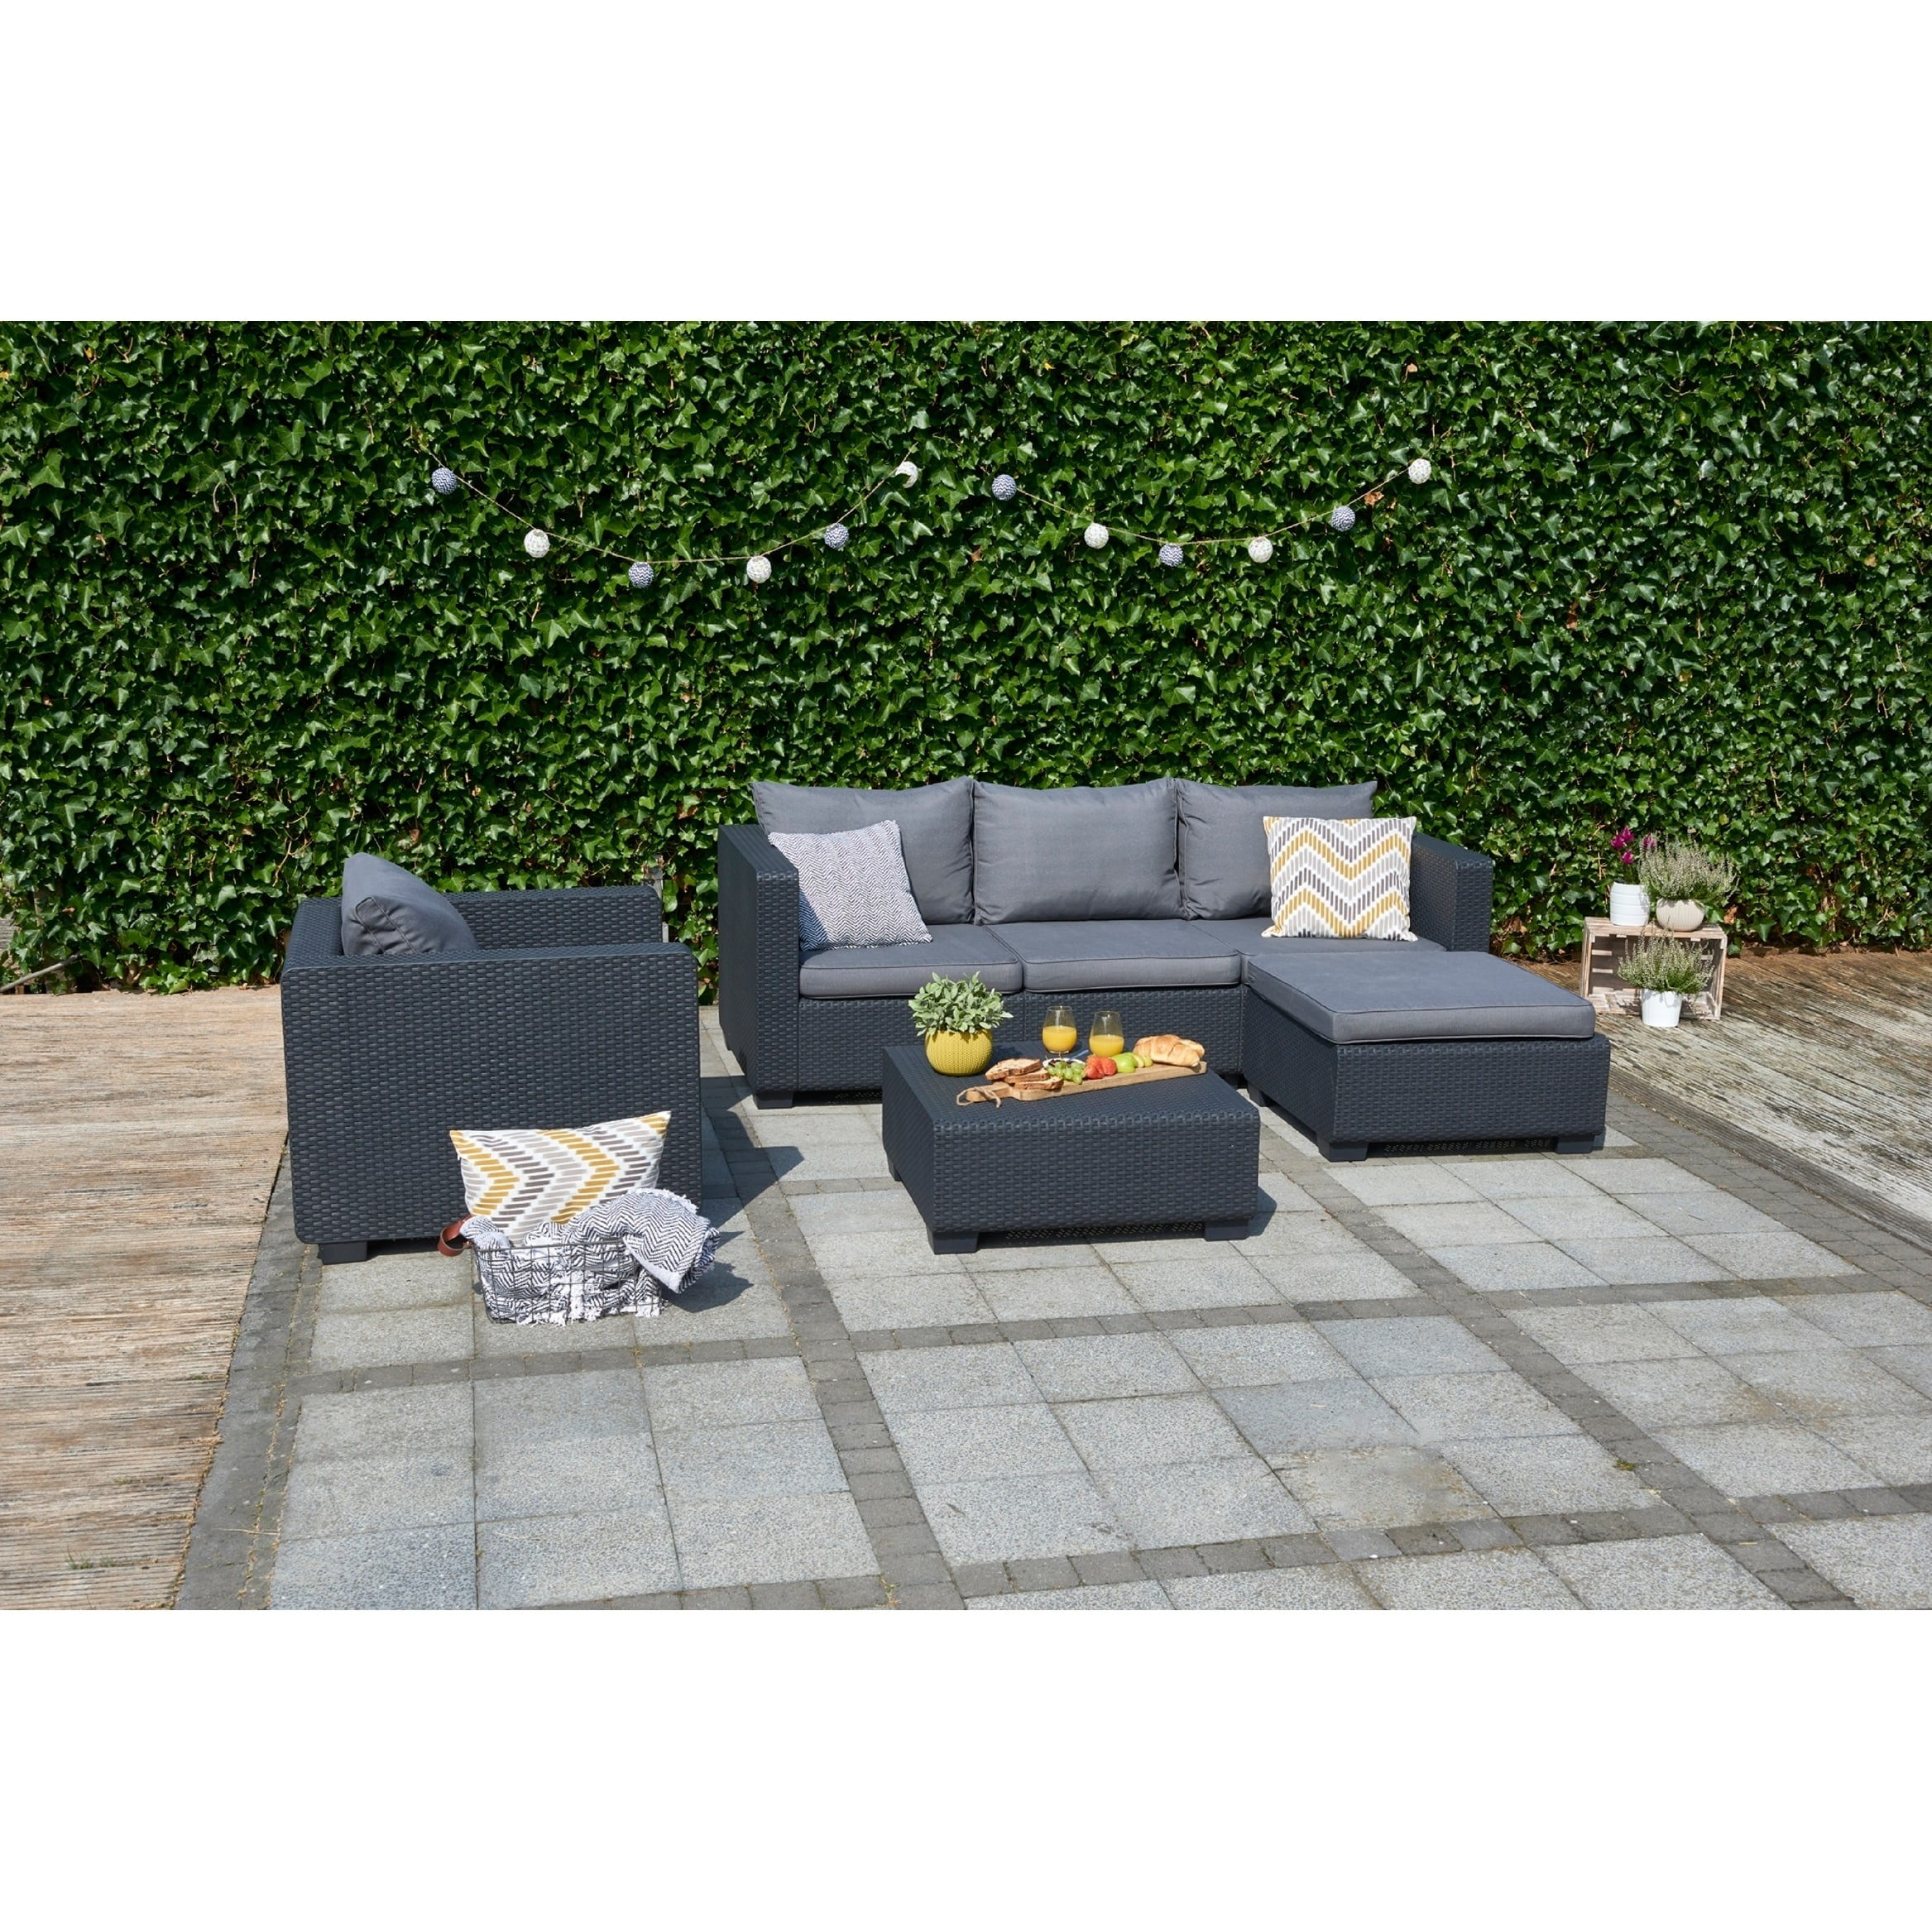 Shop Keter Salta 3 Seat All Weather Outdoor Patio Sofa With Sunbrella  Cushions   Free Shipping Today   Overstock.com   20359546